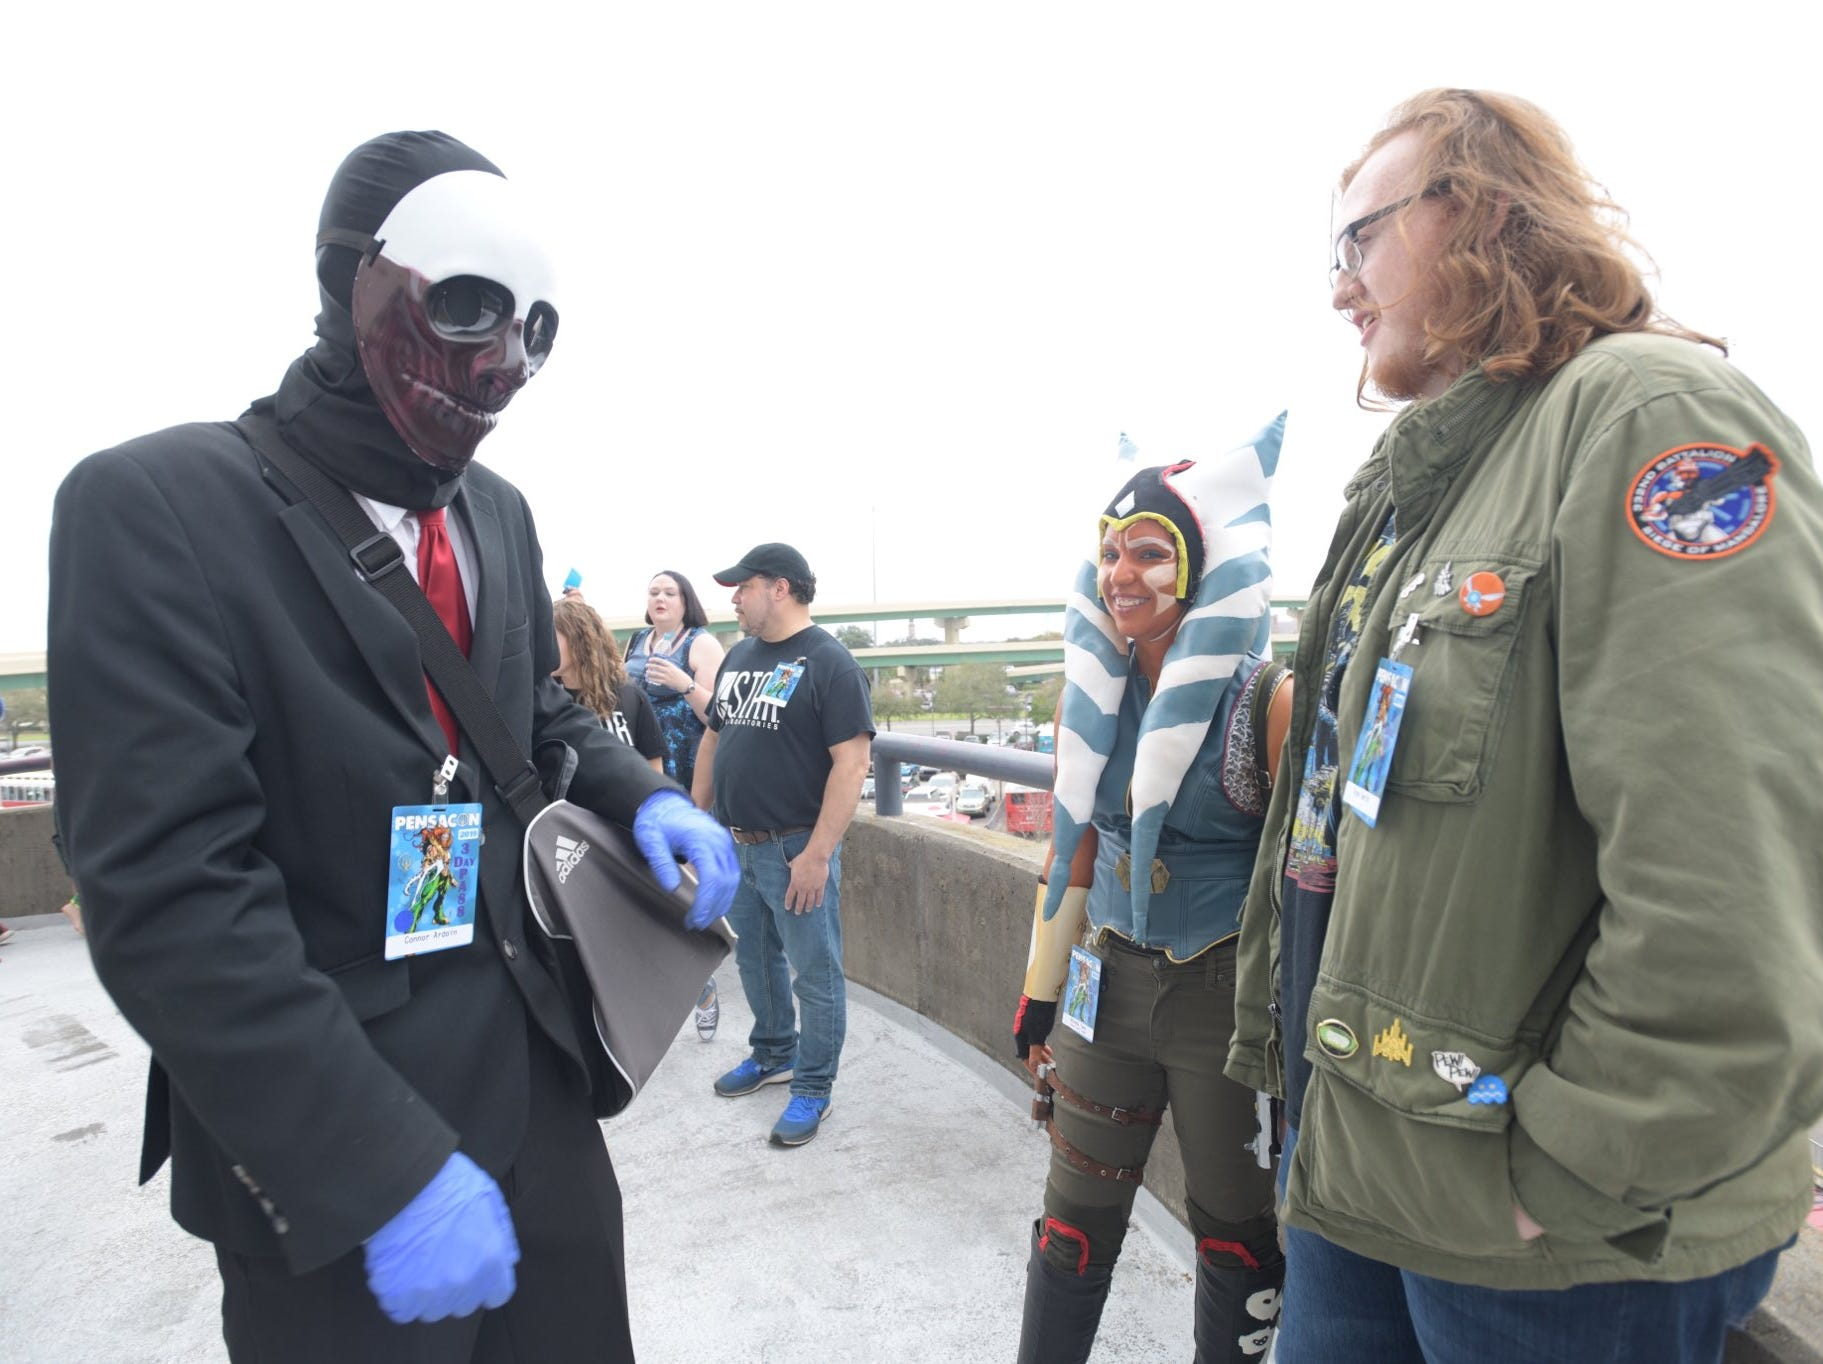 Pensacon 2019 kicks off with a bang Friday, Feb. 22, 2019, as hundreds of fans descend upon the Pensacola Bay Center to hang out with like-minded fans, meet celebrity guests and more.